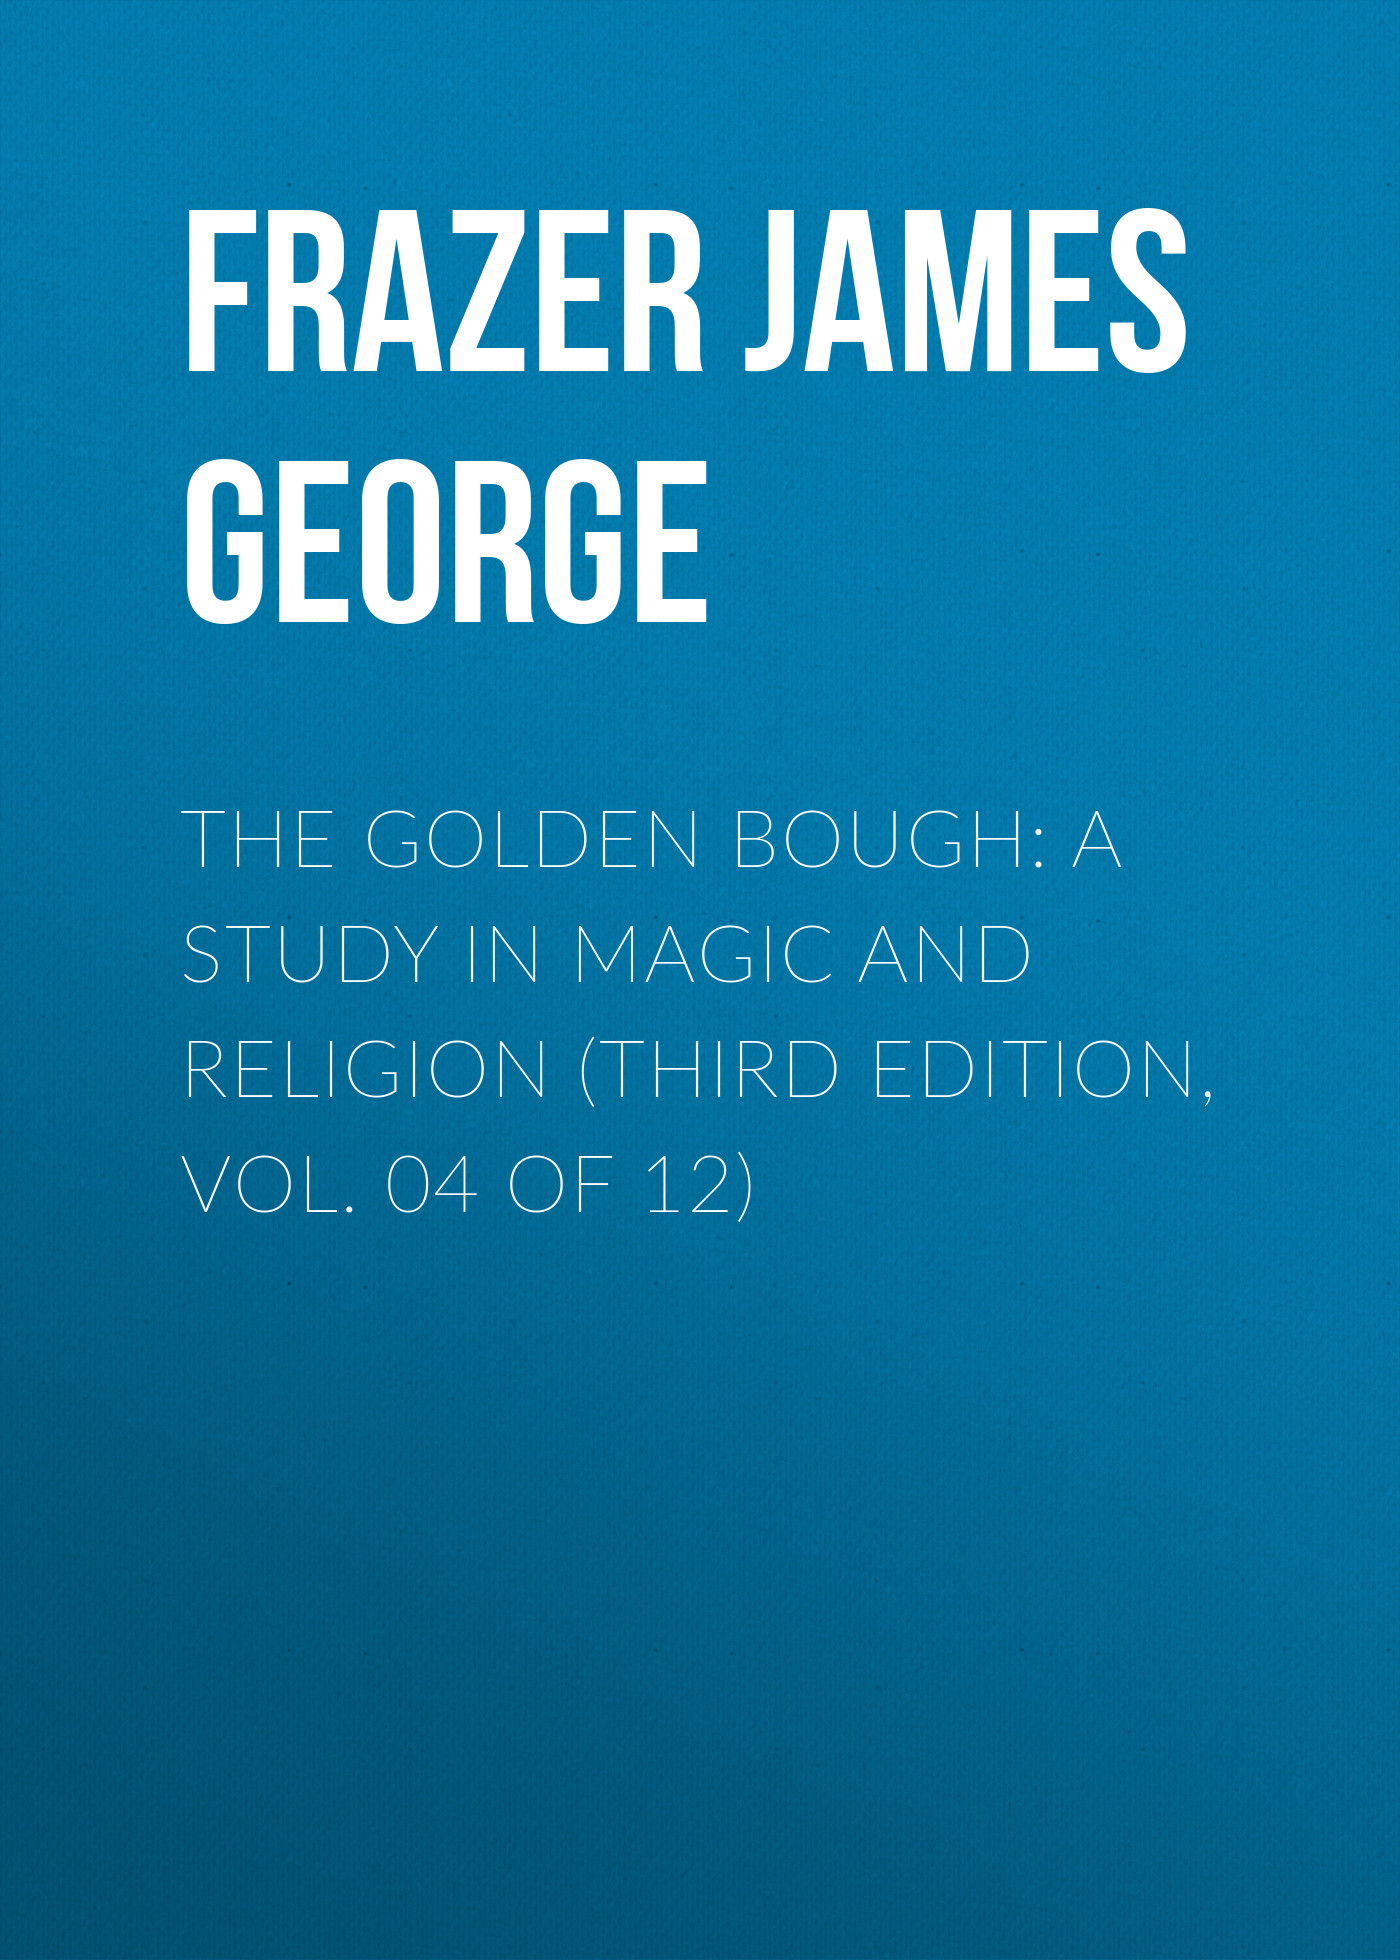 Frazer James George The Golden Bough: A Study in Magic and Religion (Third Edition, Vol. 04 of 12) frazer james george the belief in immortality and the worship of the dead volume 2 of 3